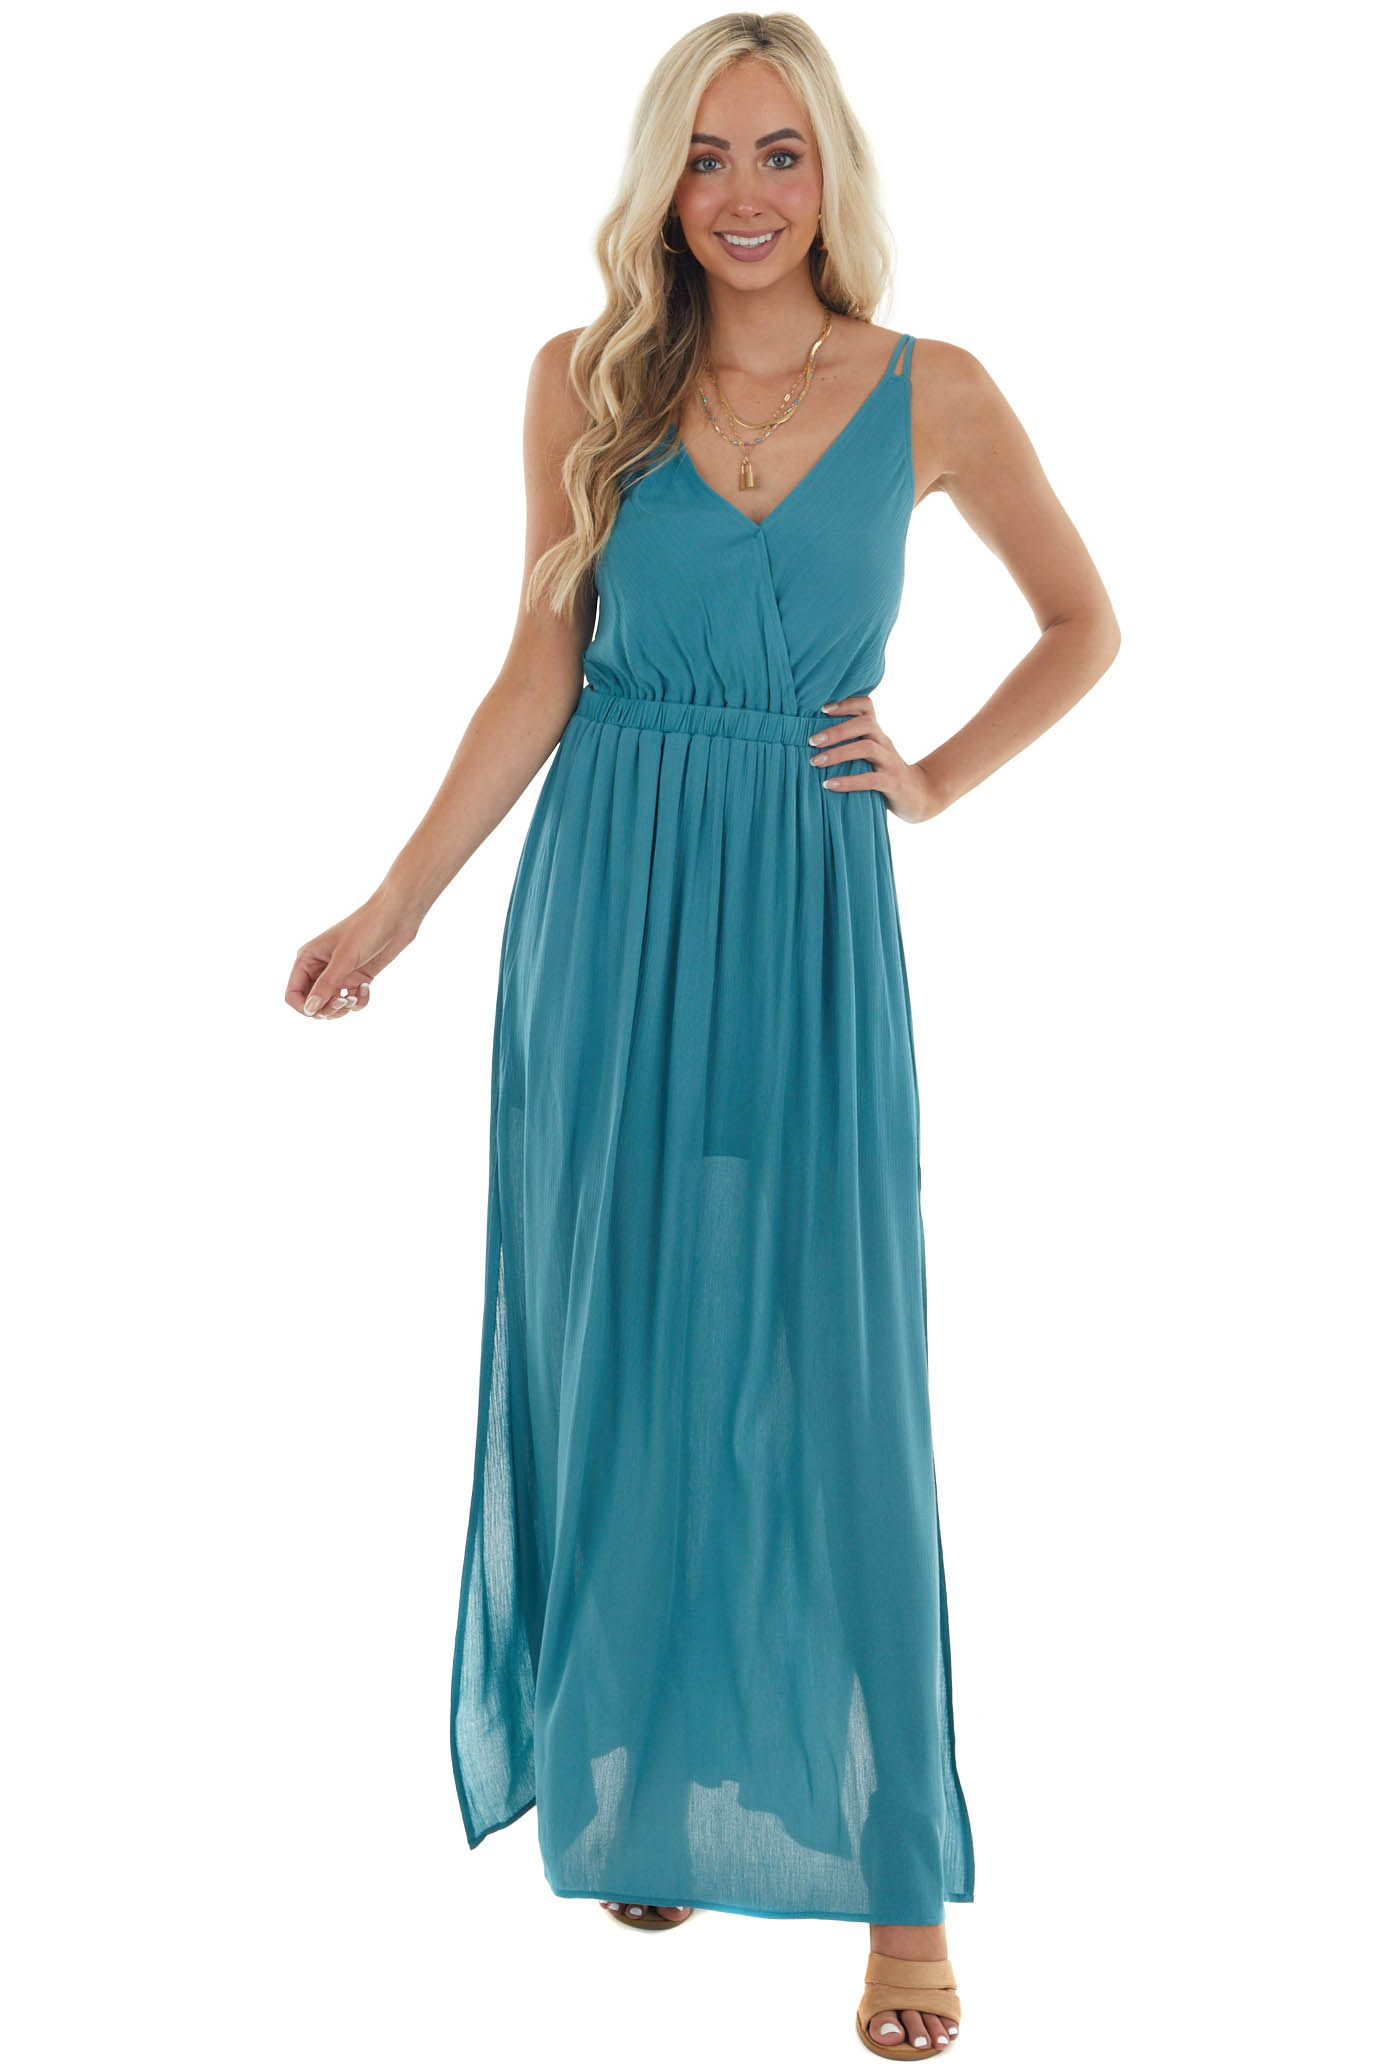 Teal V Neck Maxi Dress with Straps